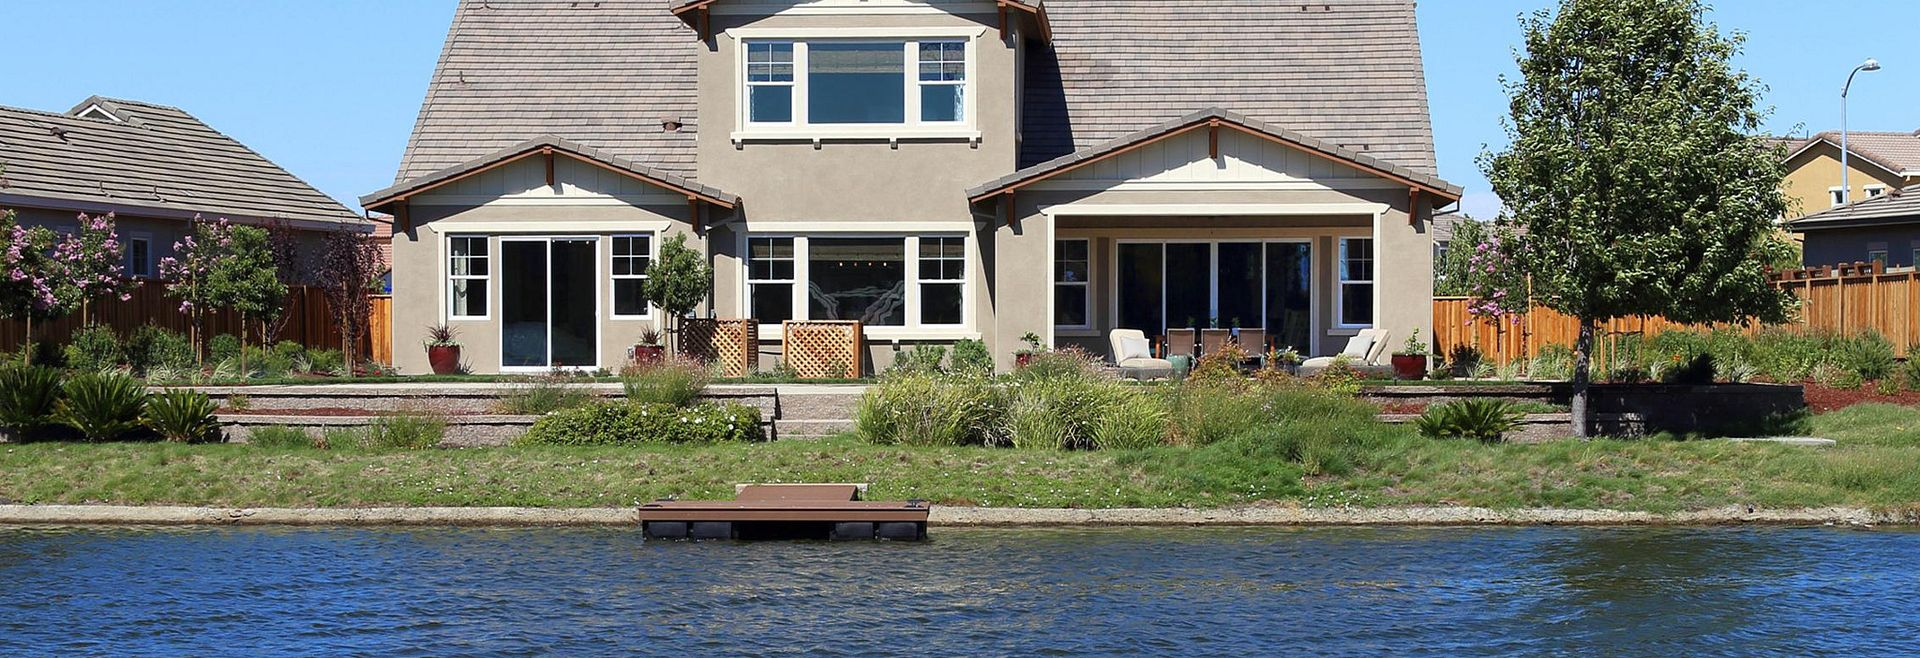 Shoreline at Summer Lake by Shea Homes in Oakley, CA